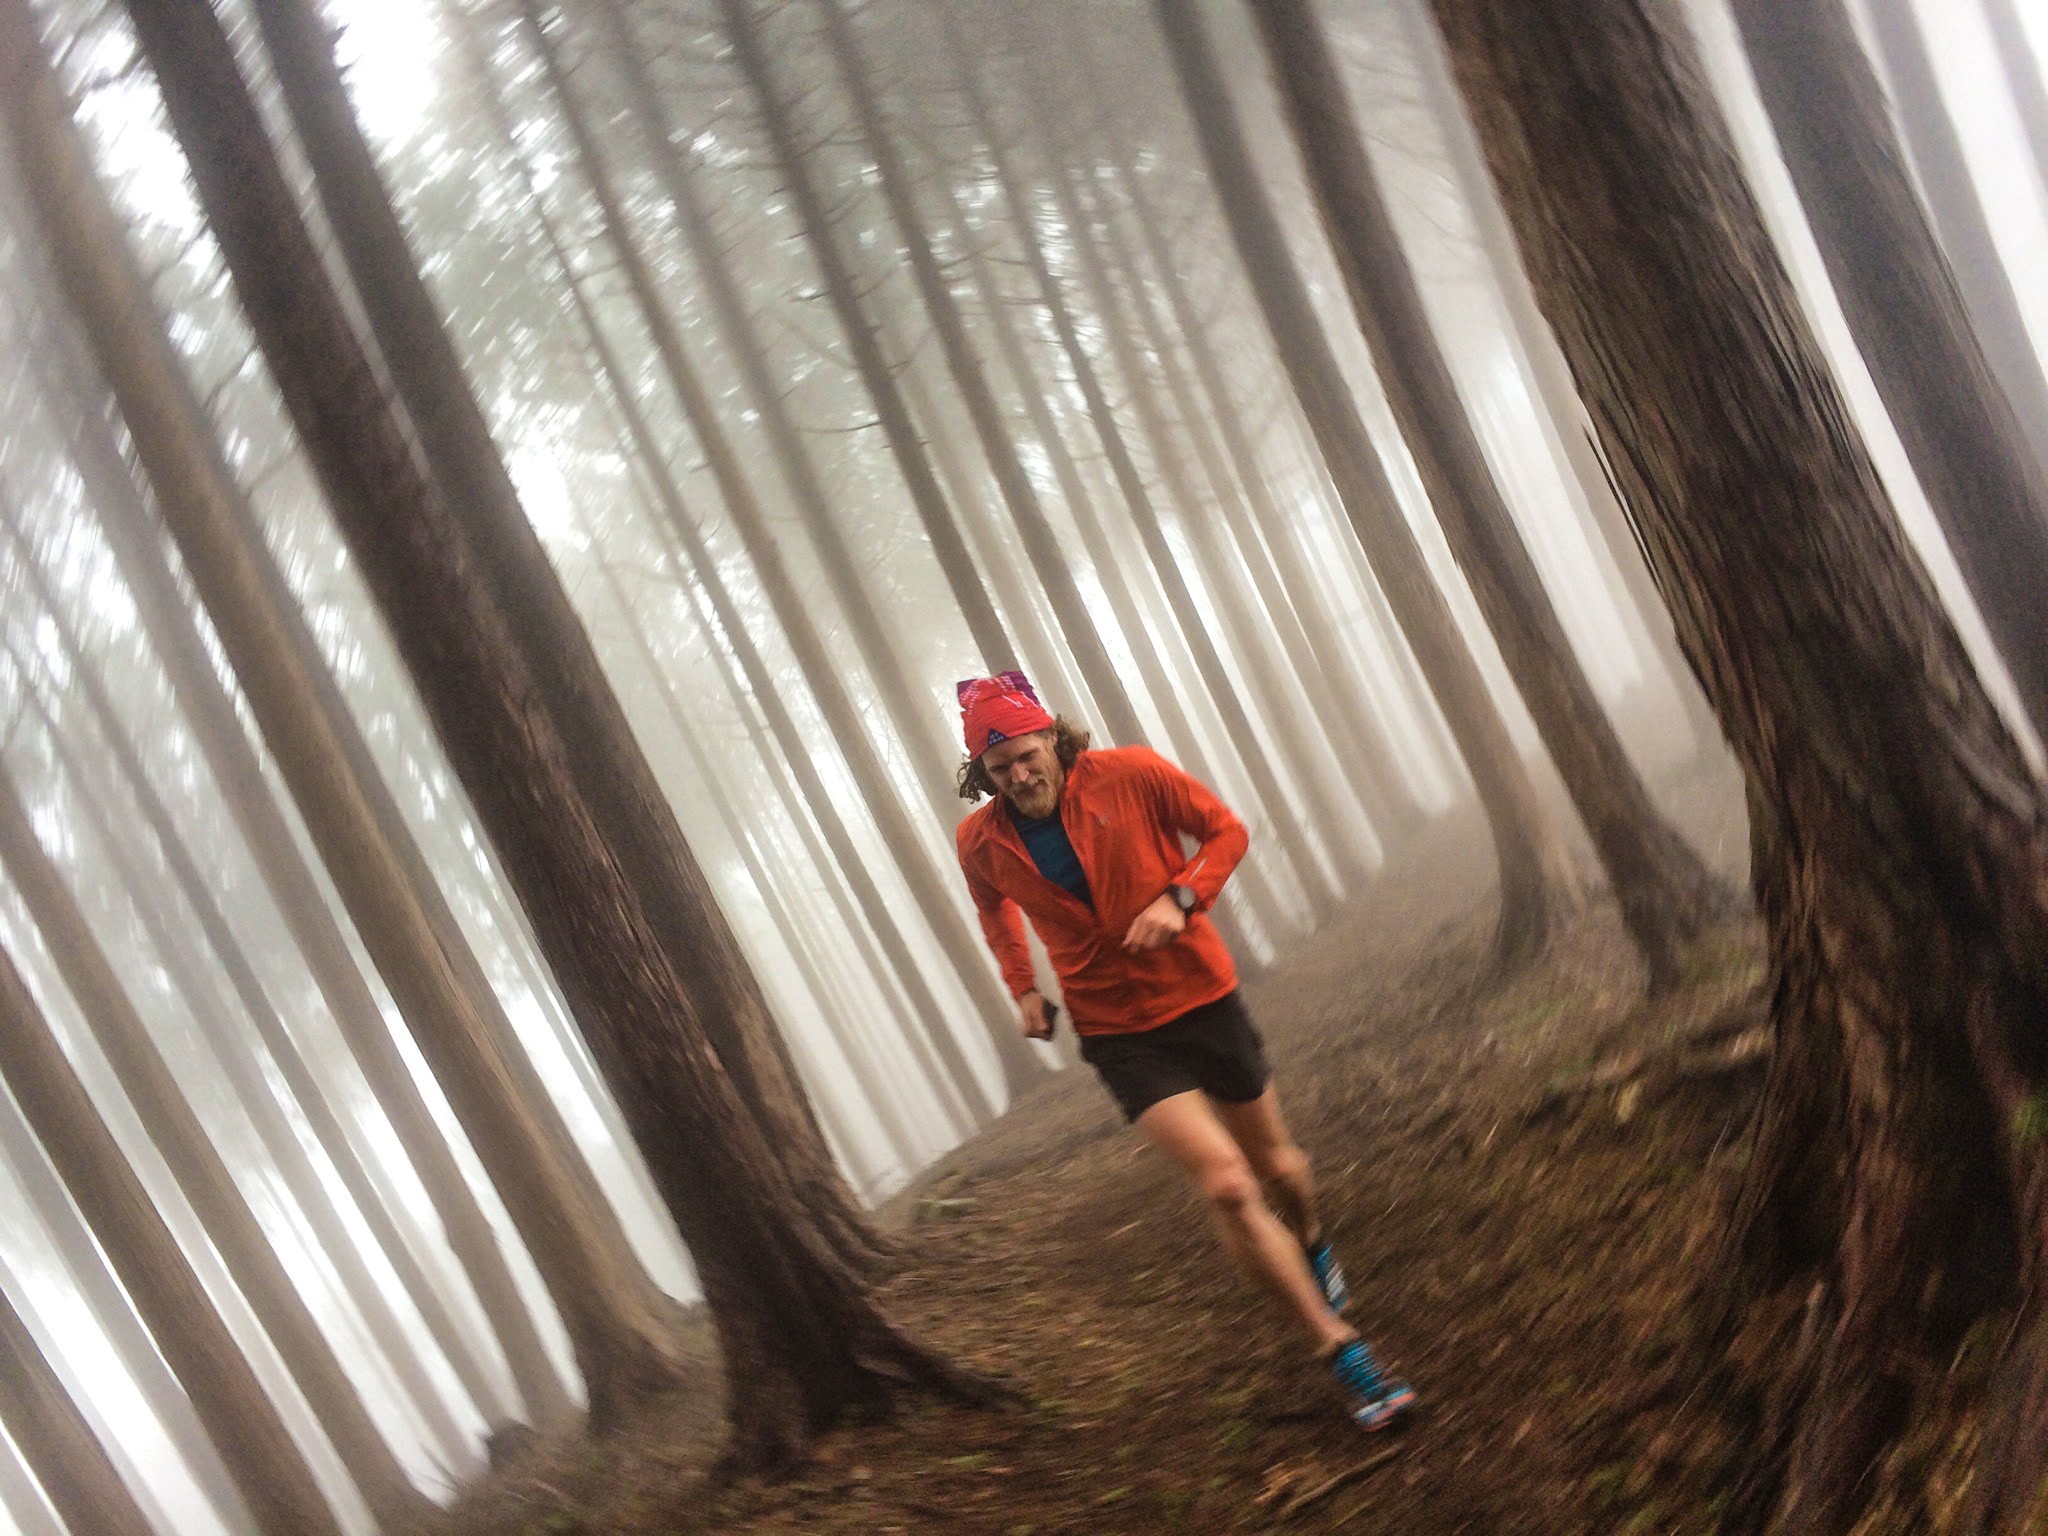 Joe warming up for UTMF - photo courtesy of Shinsuke Isomura